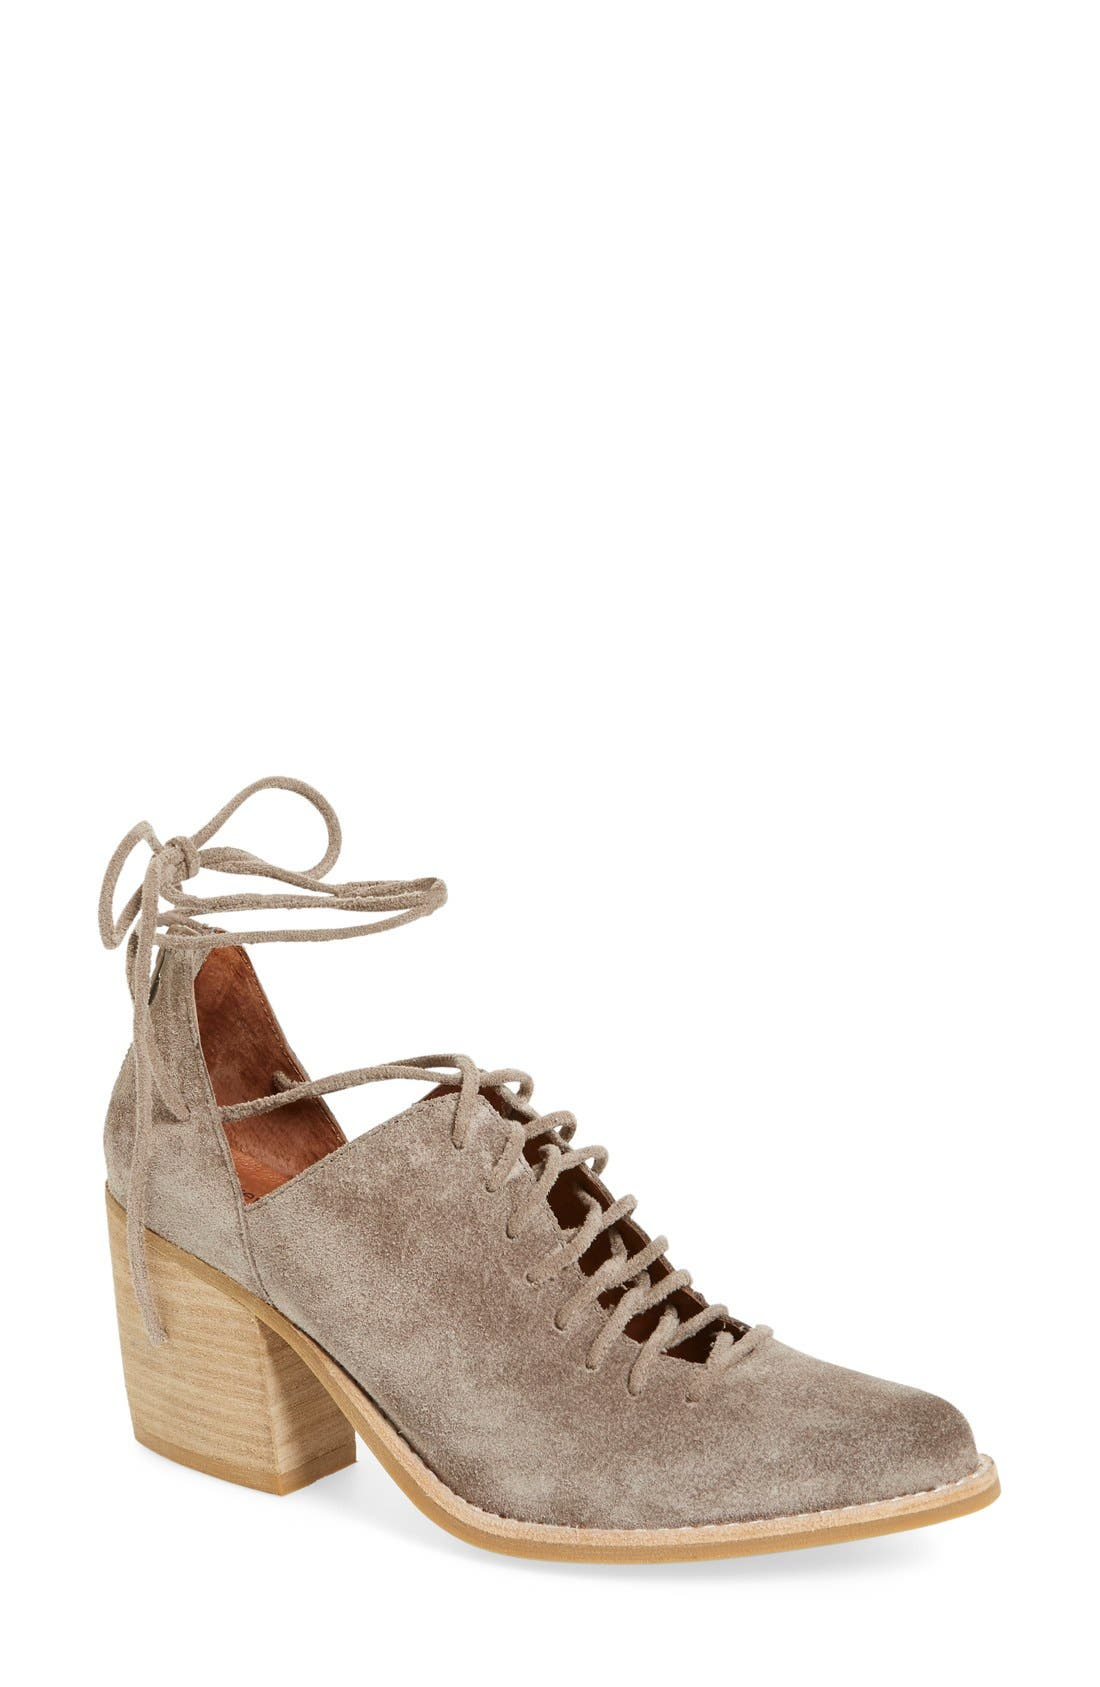 Alternate Image 1 Selected - Jeffrey Campbell 'Amata-Tie' Lace-Up Bootie (Women)